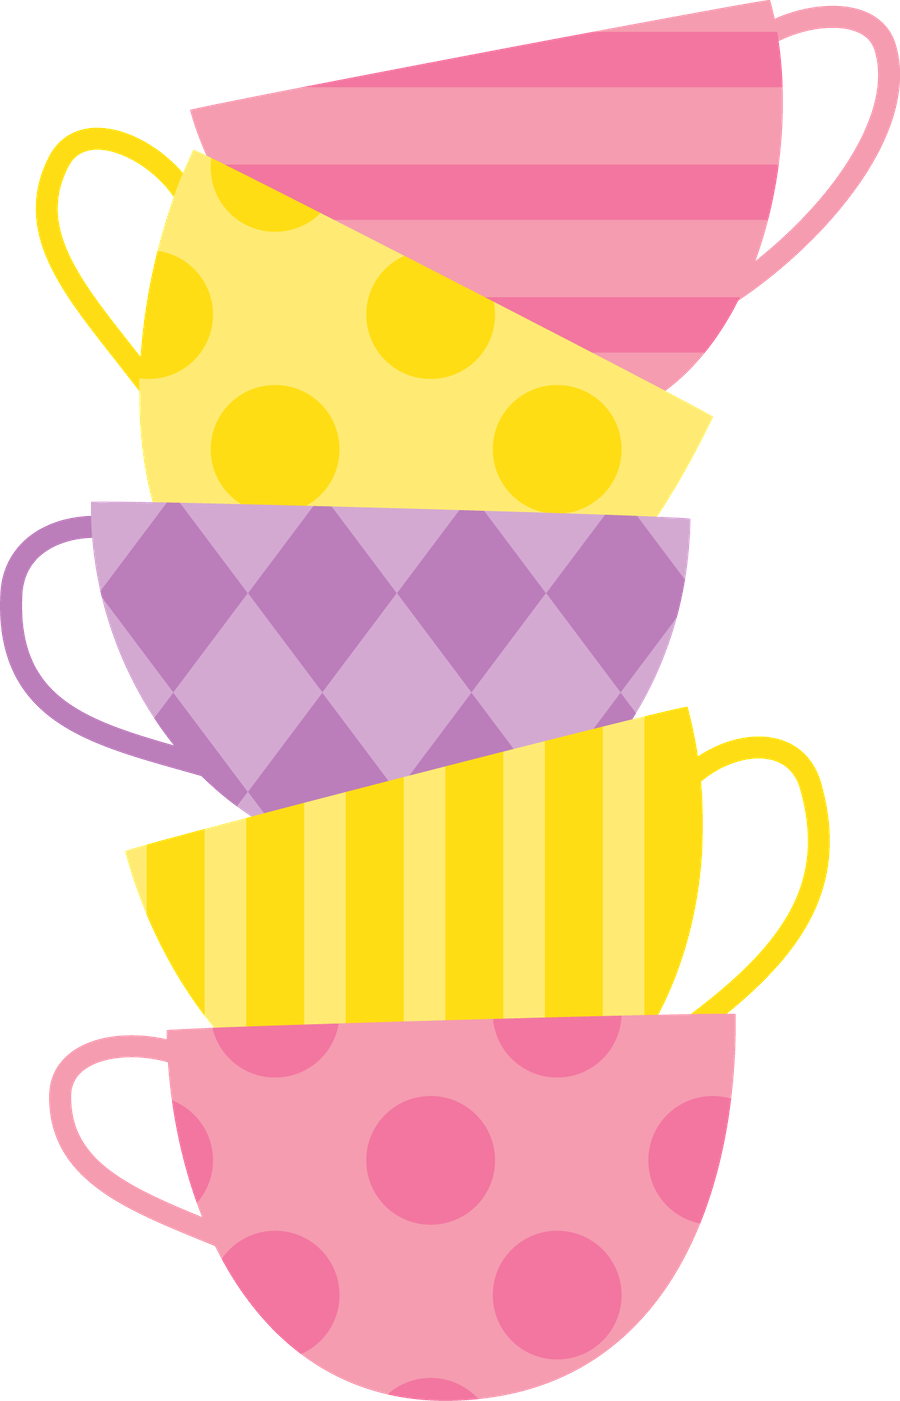 Minus say hello and. Cup clipart alice in wonderland